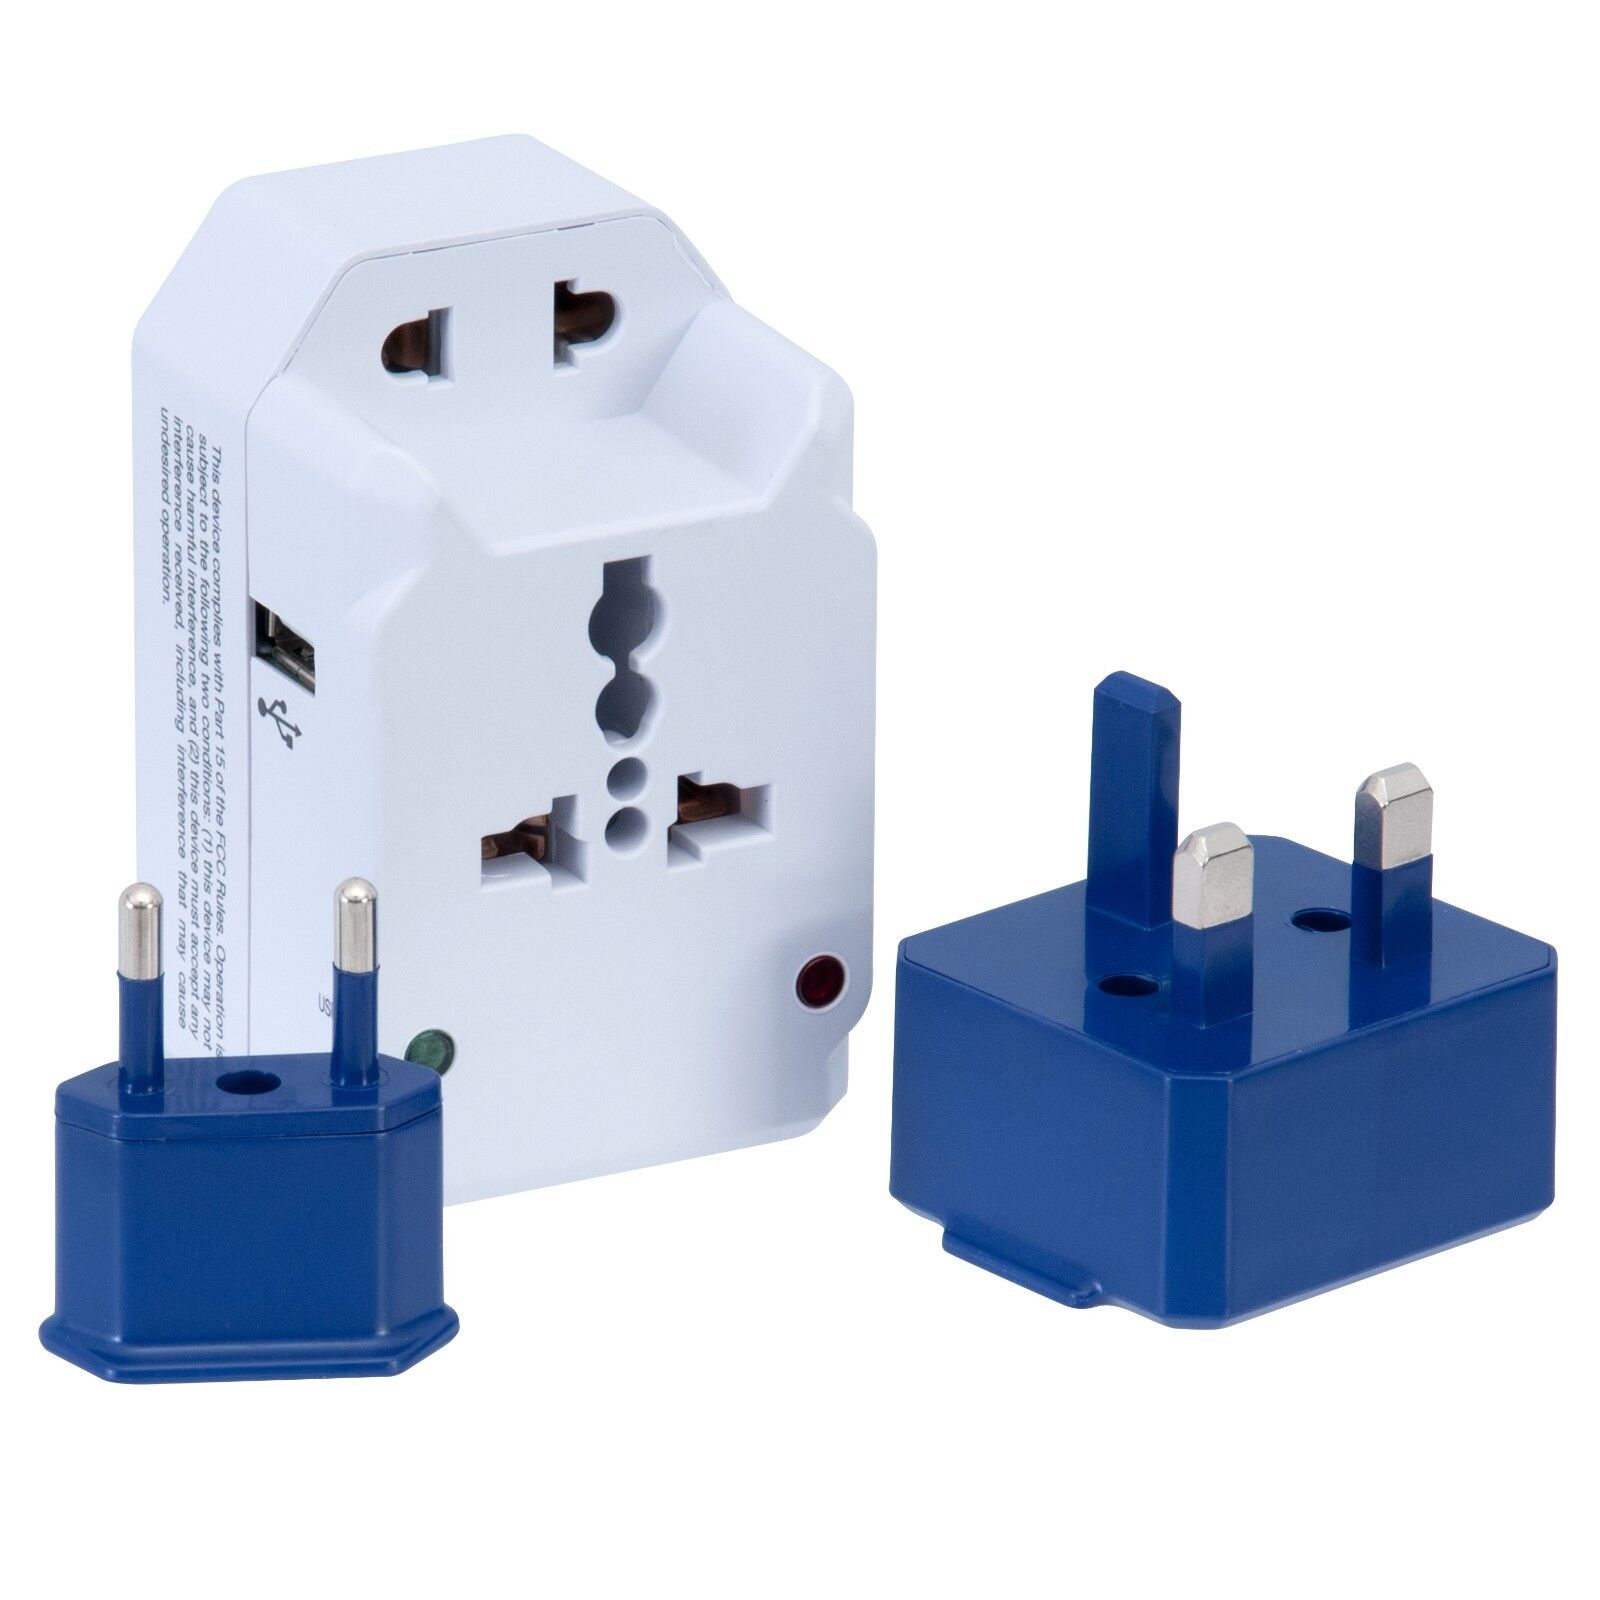 American Tourister All In One Adapter Plug Set With 3 Outlets And USB